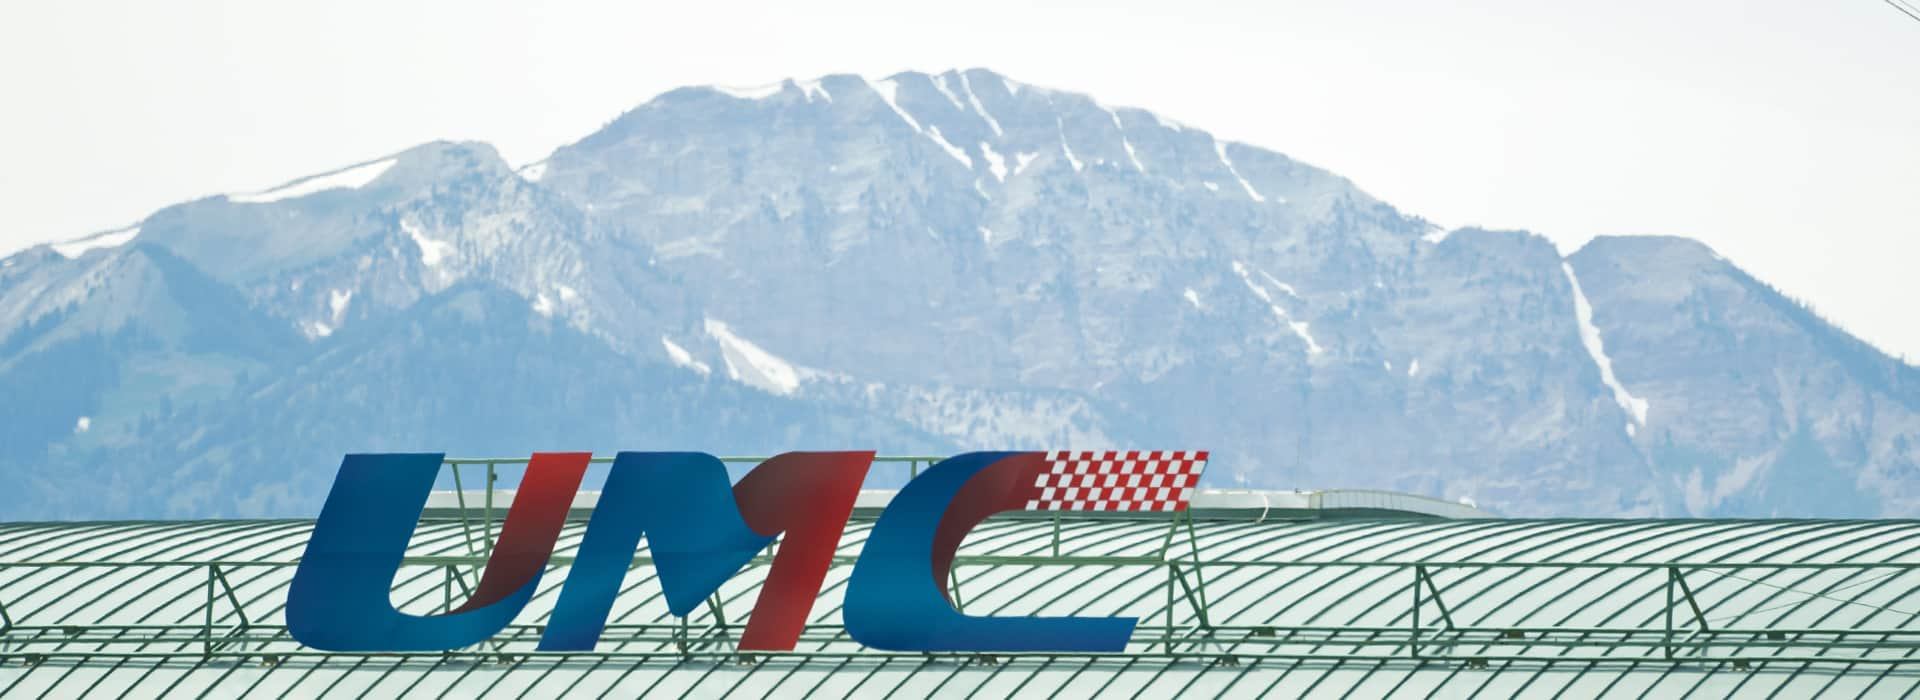 Utah Motorsports Campus Logo in the Salt Lake Valley Background